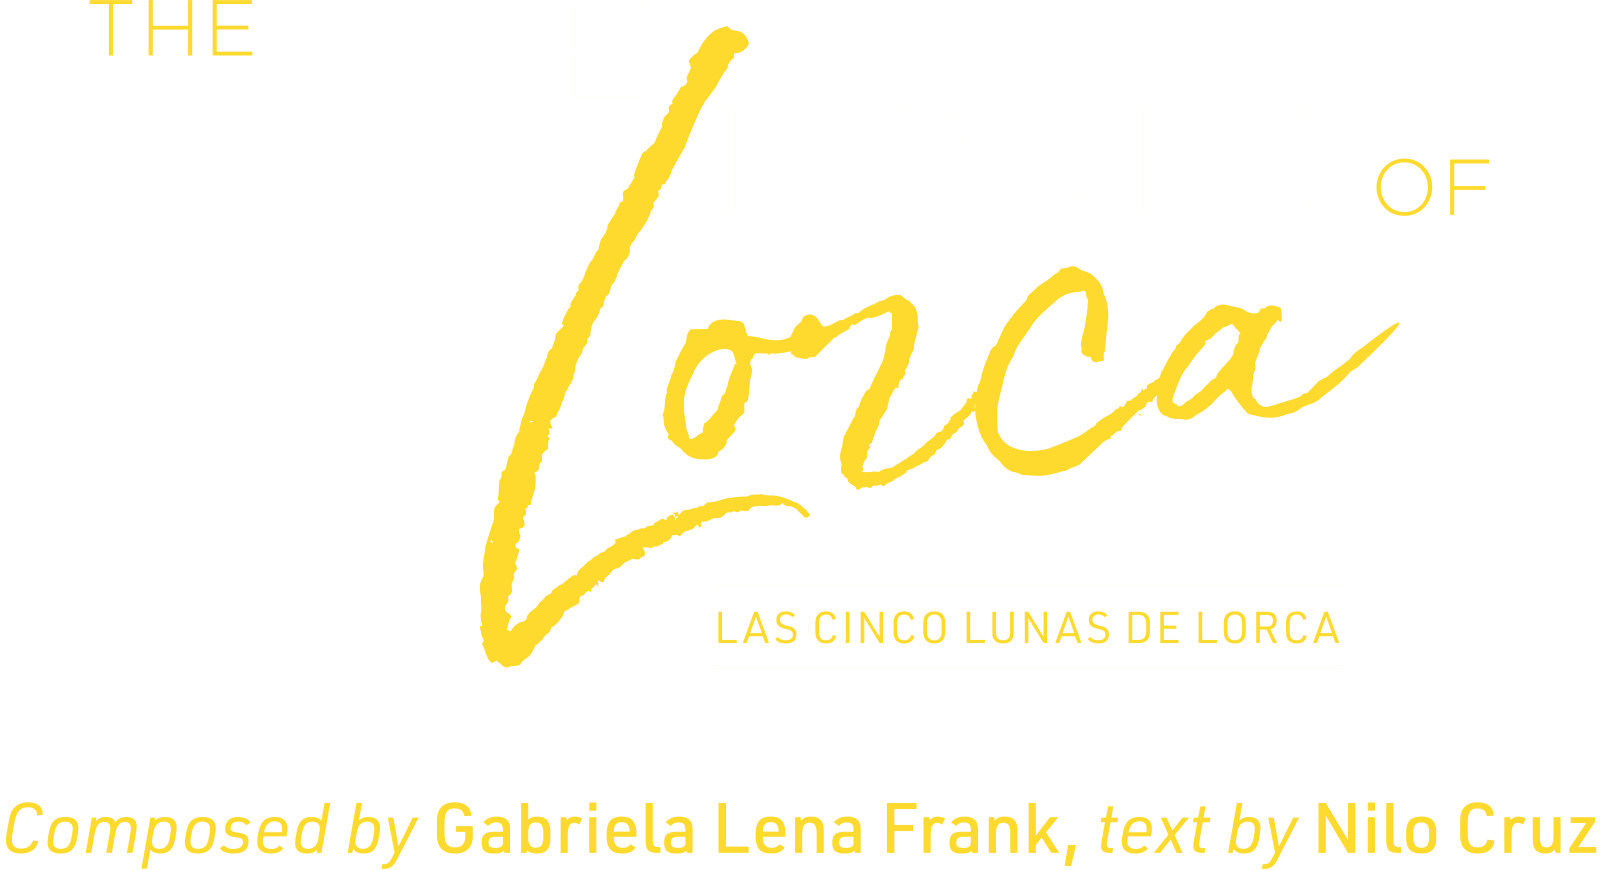 The Five Moons of Lorca